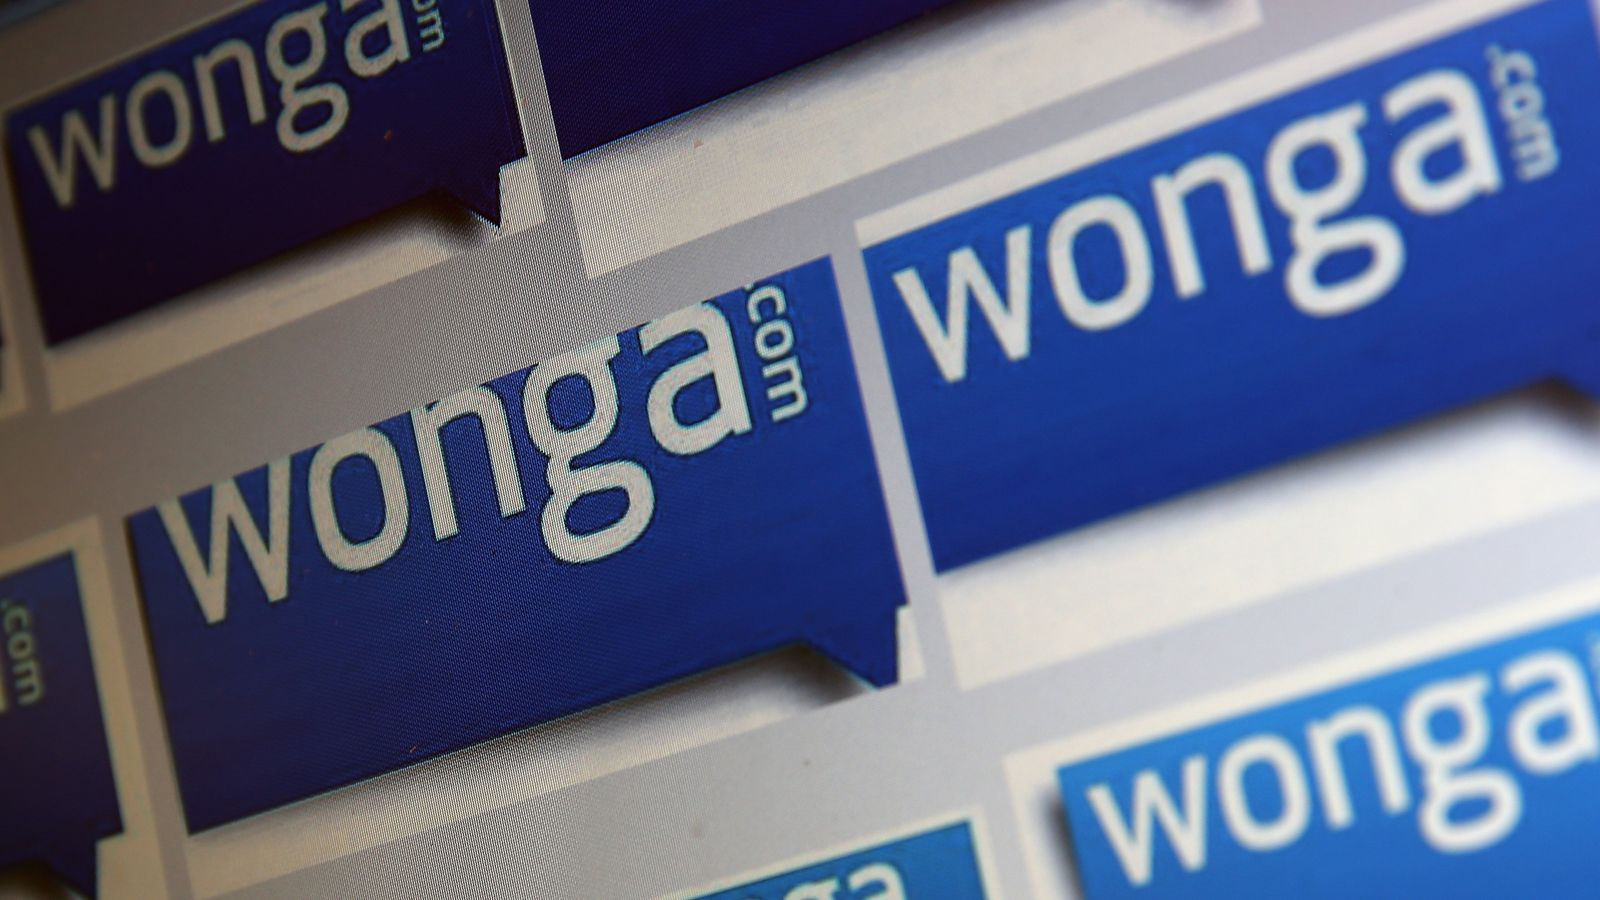 Payday lender Wonga collapses into administration amid deluge of customer compensation claims